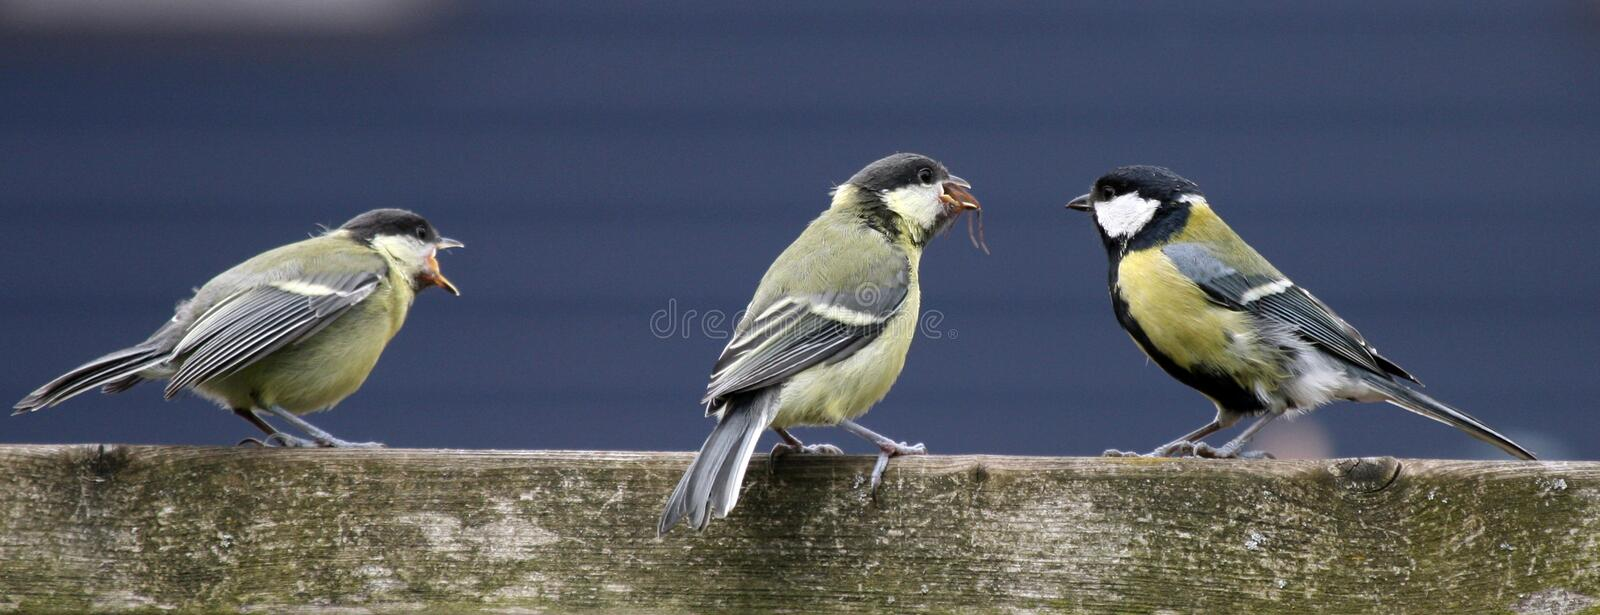 Young birds stock image